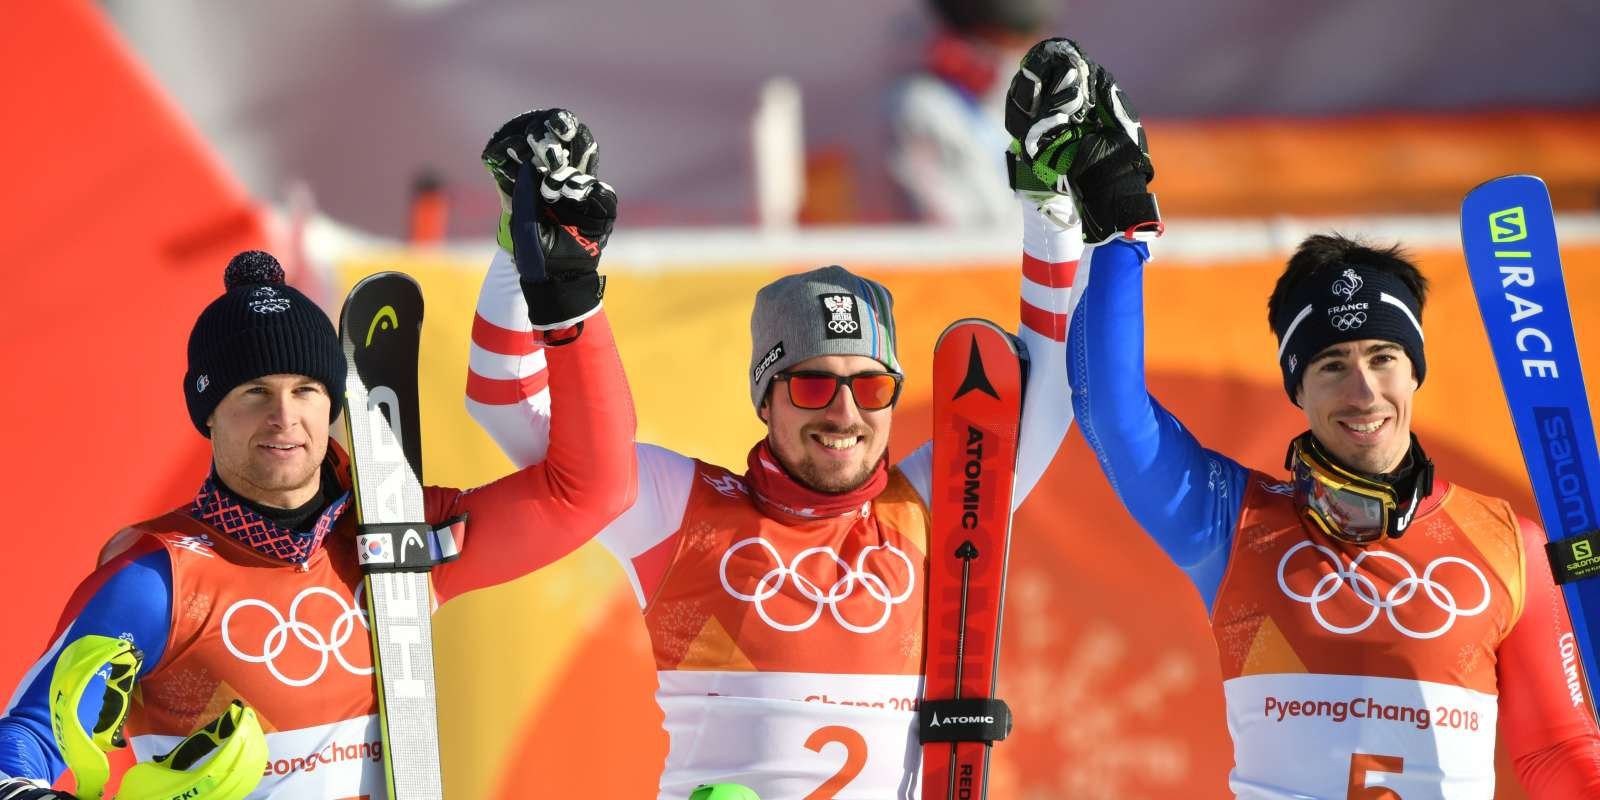 France's Alexis Pinturault (L), silver medal, Austria's Marcel Hirscher (C), gold, and France's Victor Muffat-Jeandet, bronze, celebrate in the finish area after competing in the Men's Alpine Combined Slalom at the Jeongseon Alpine Center during the Pyeongchang 2018 Winter Olympic Games in Pyeongchang on February 13, 2018. / AFP / Fabrice COFFRINI